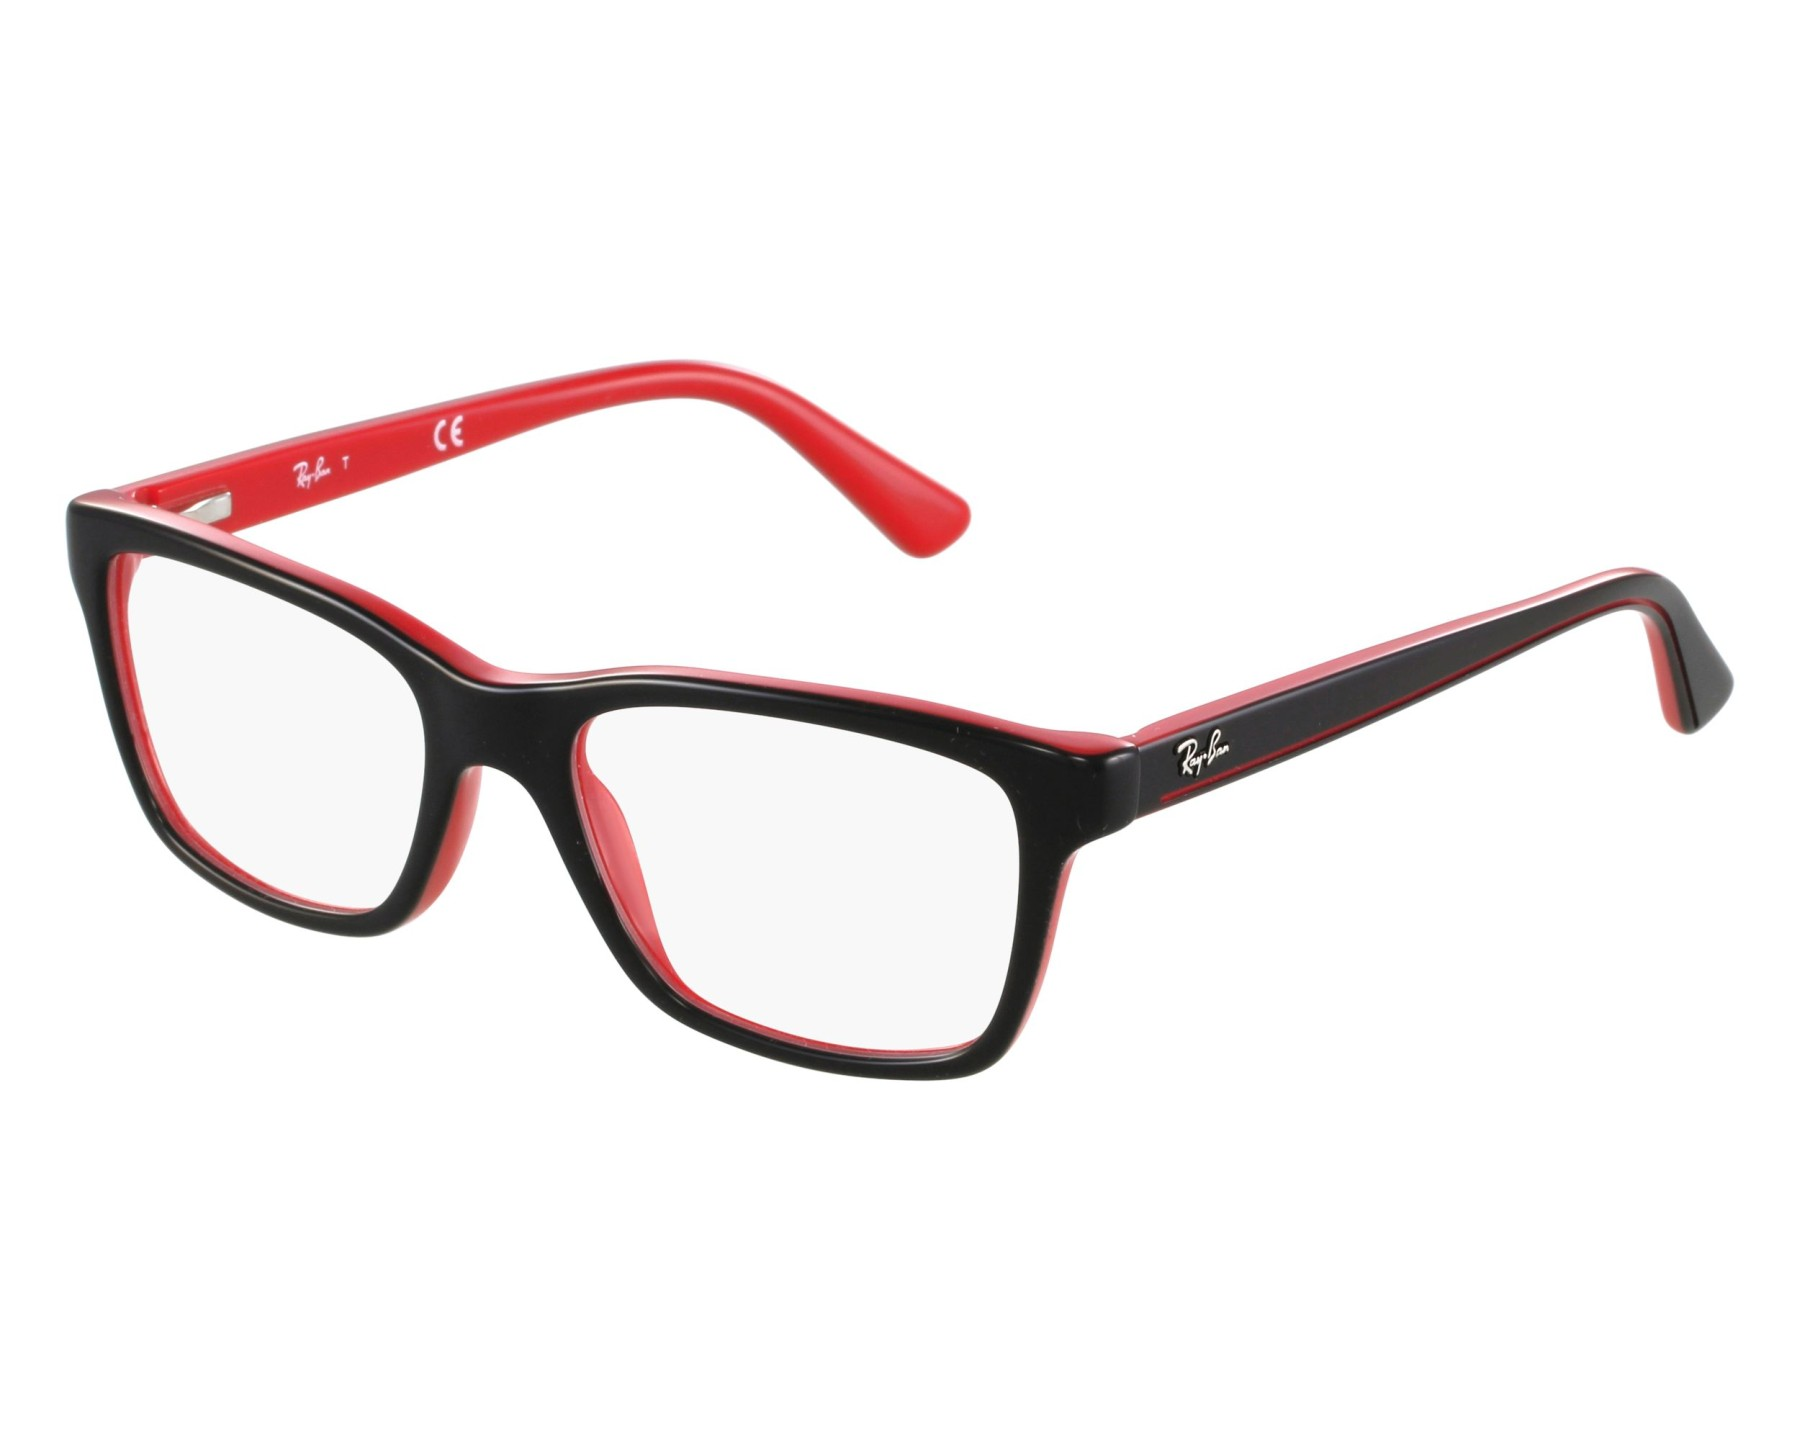 04f465fa664 eyeglasses Ray-Ban RY-1536 3573 48-16 Black Red front view